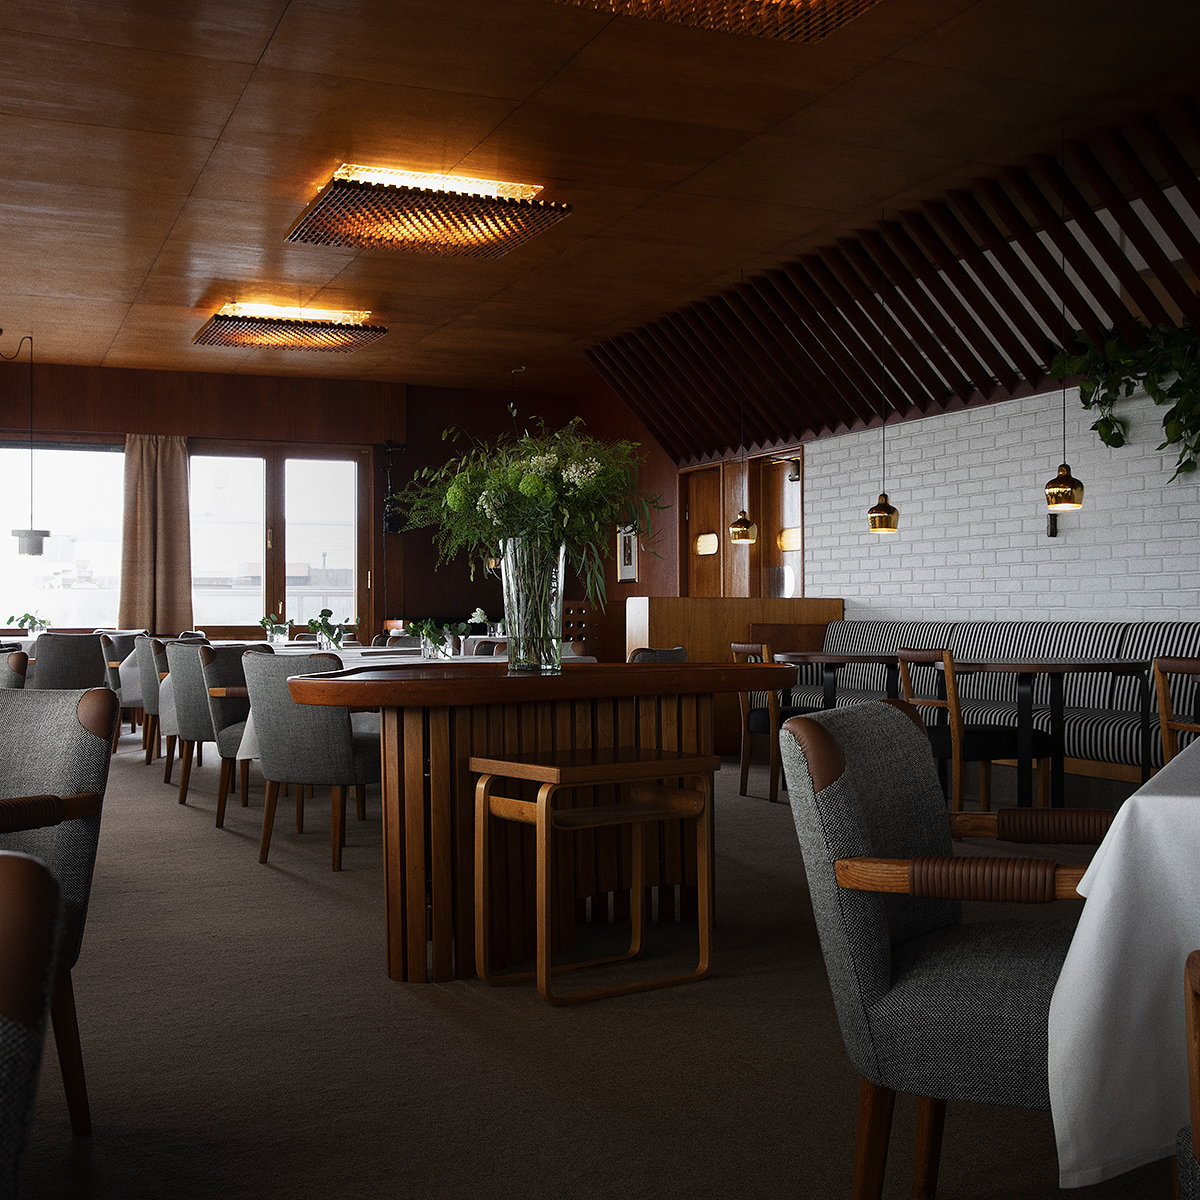 Restaurant Savoy by Alvar and Aino Aalto Now Open After Renovation by Studioilse